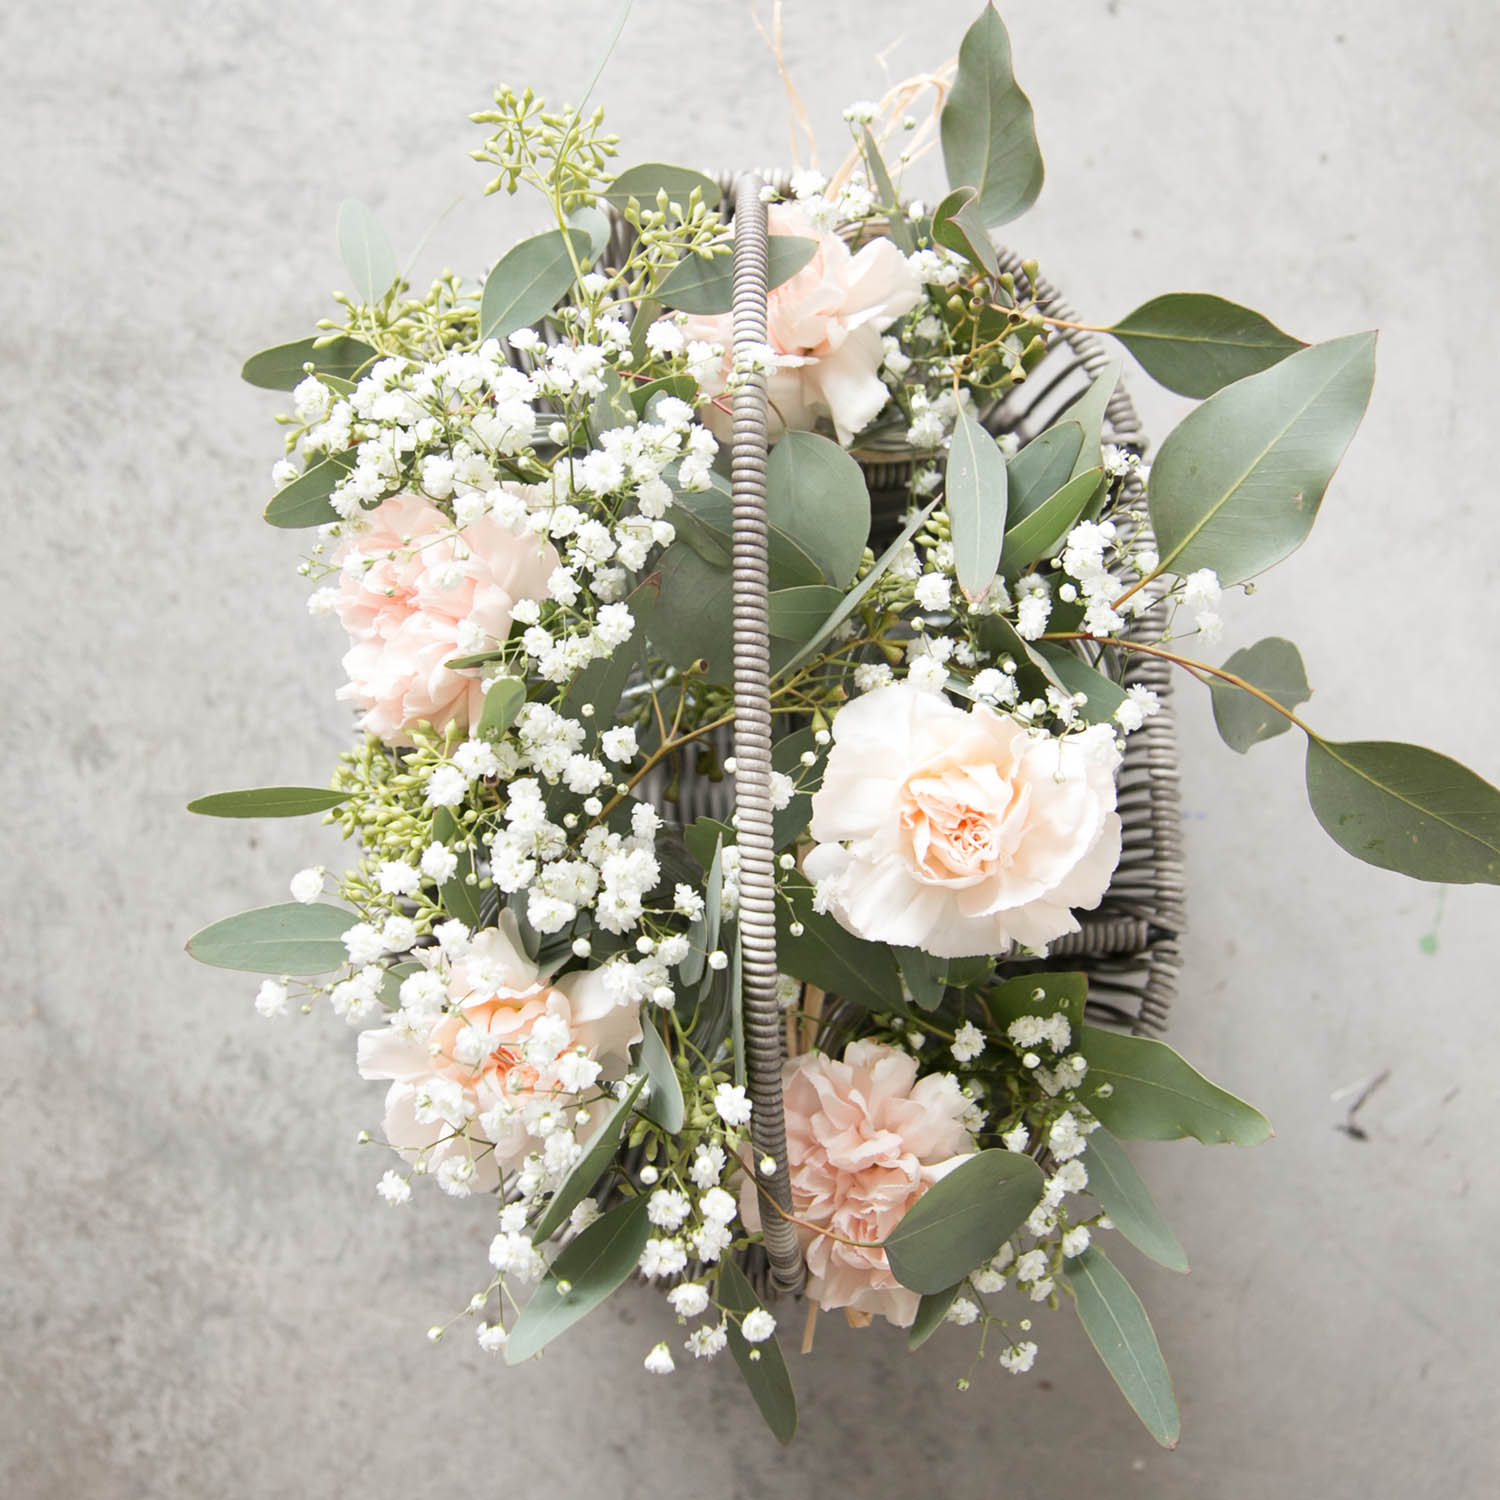 blush carnations, baby's breath and eucalyptus